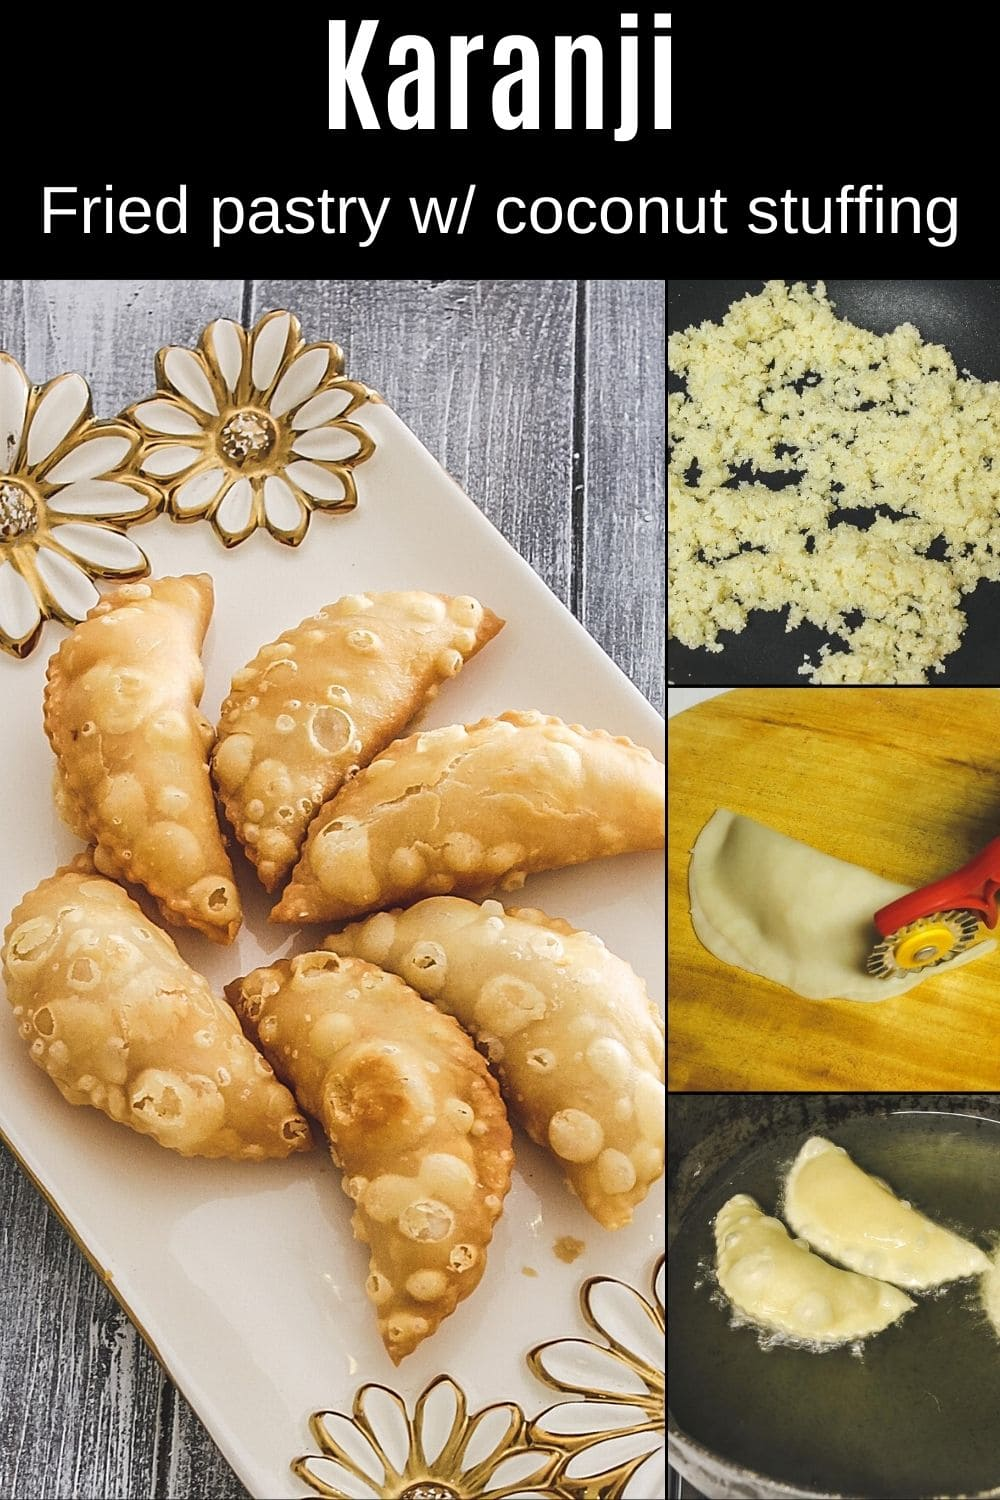 collage of 4 images showing karanji in plate with stuffing, shaping and frying karanji with text on top